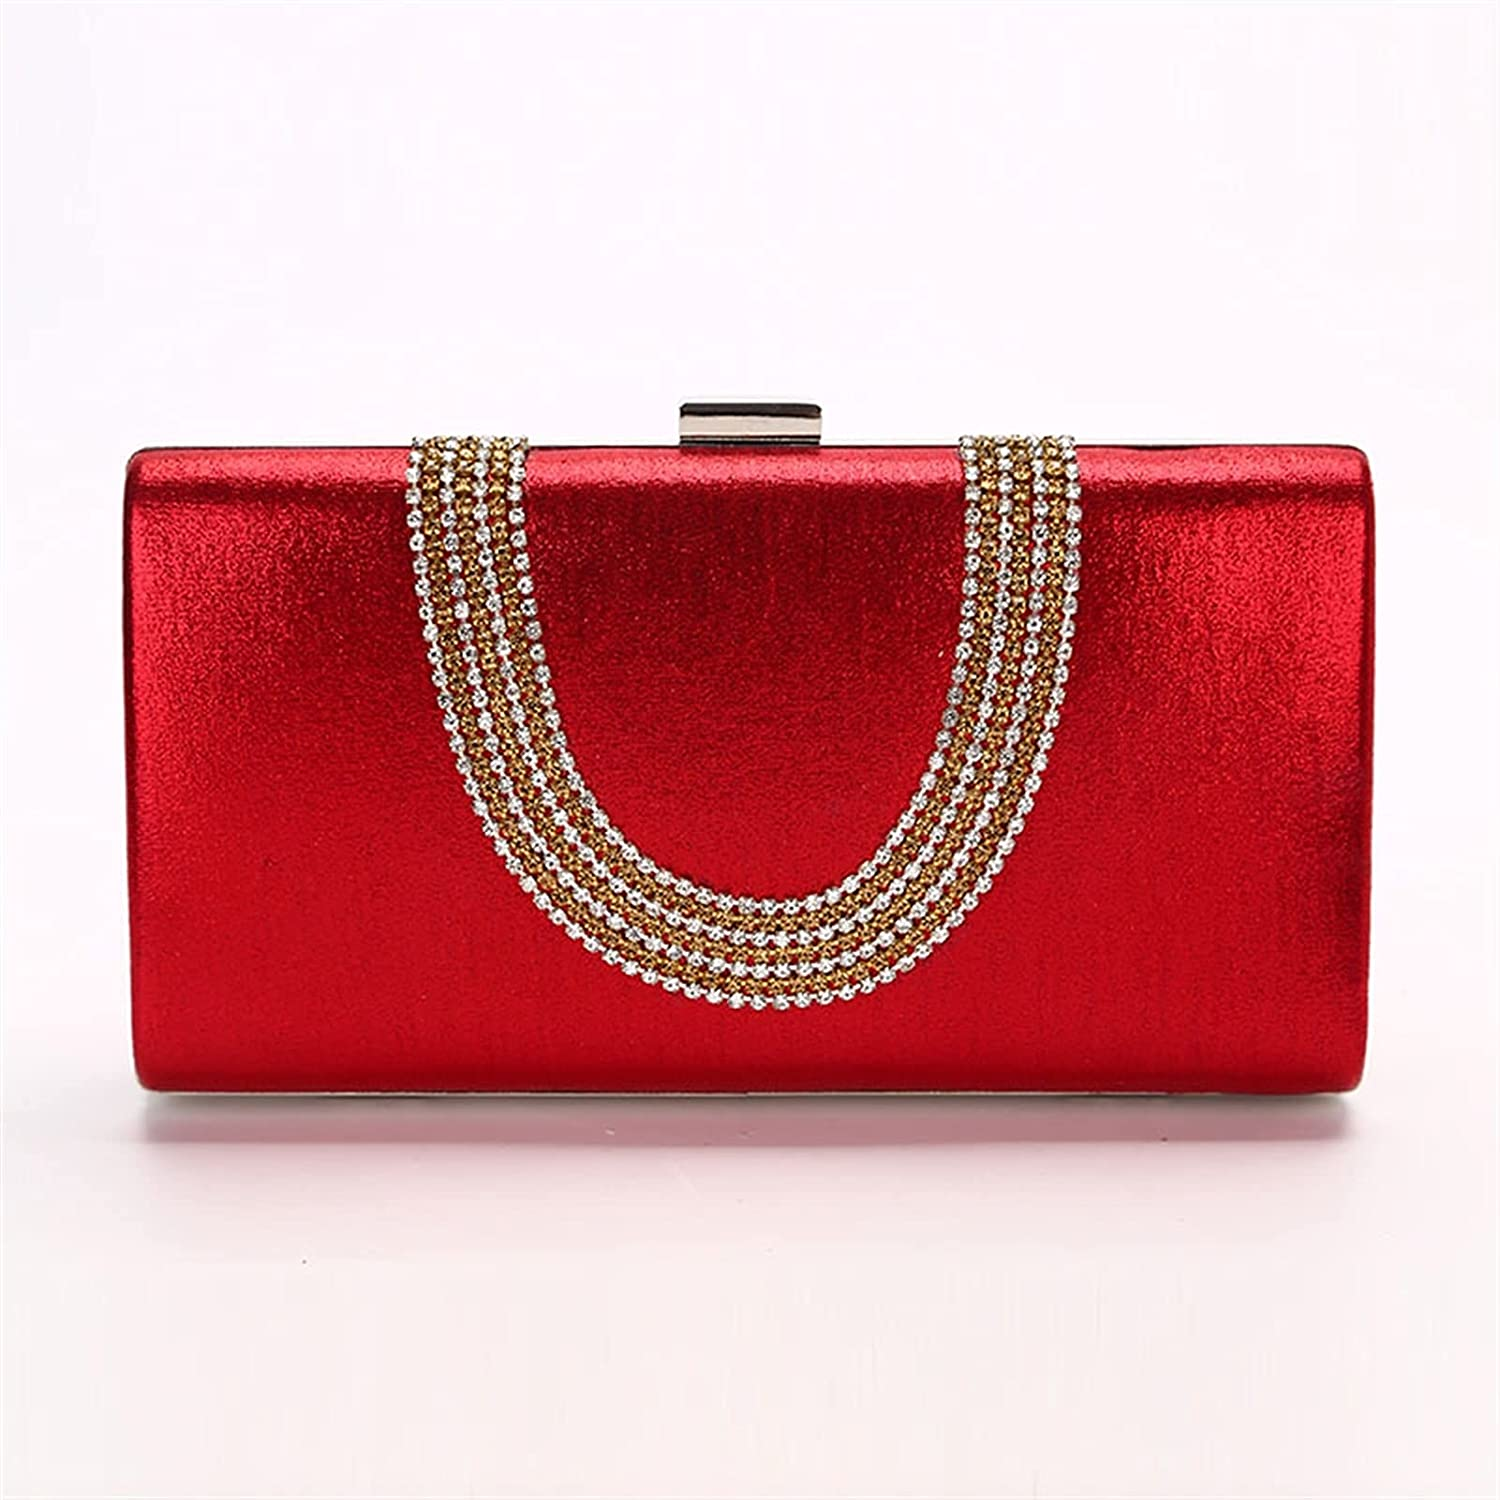 ATHH Crystal Sling Package Woman Clutch Bag,for Women Wedding Party Clutch Bags Highclass Evening Crystal Clutch Purse Prom Sac